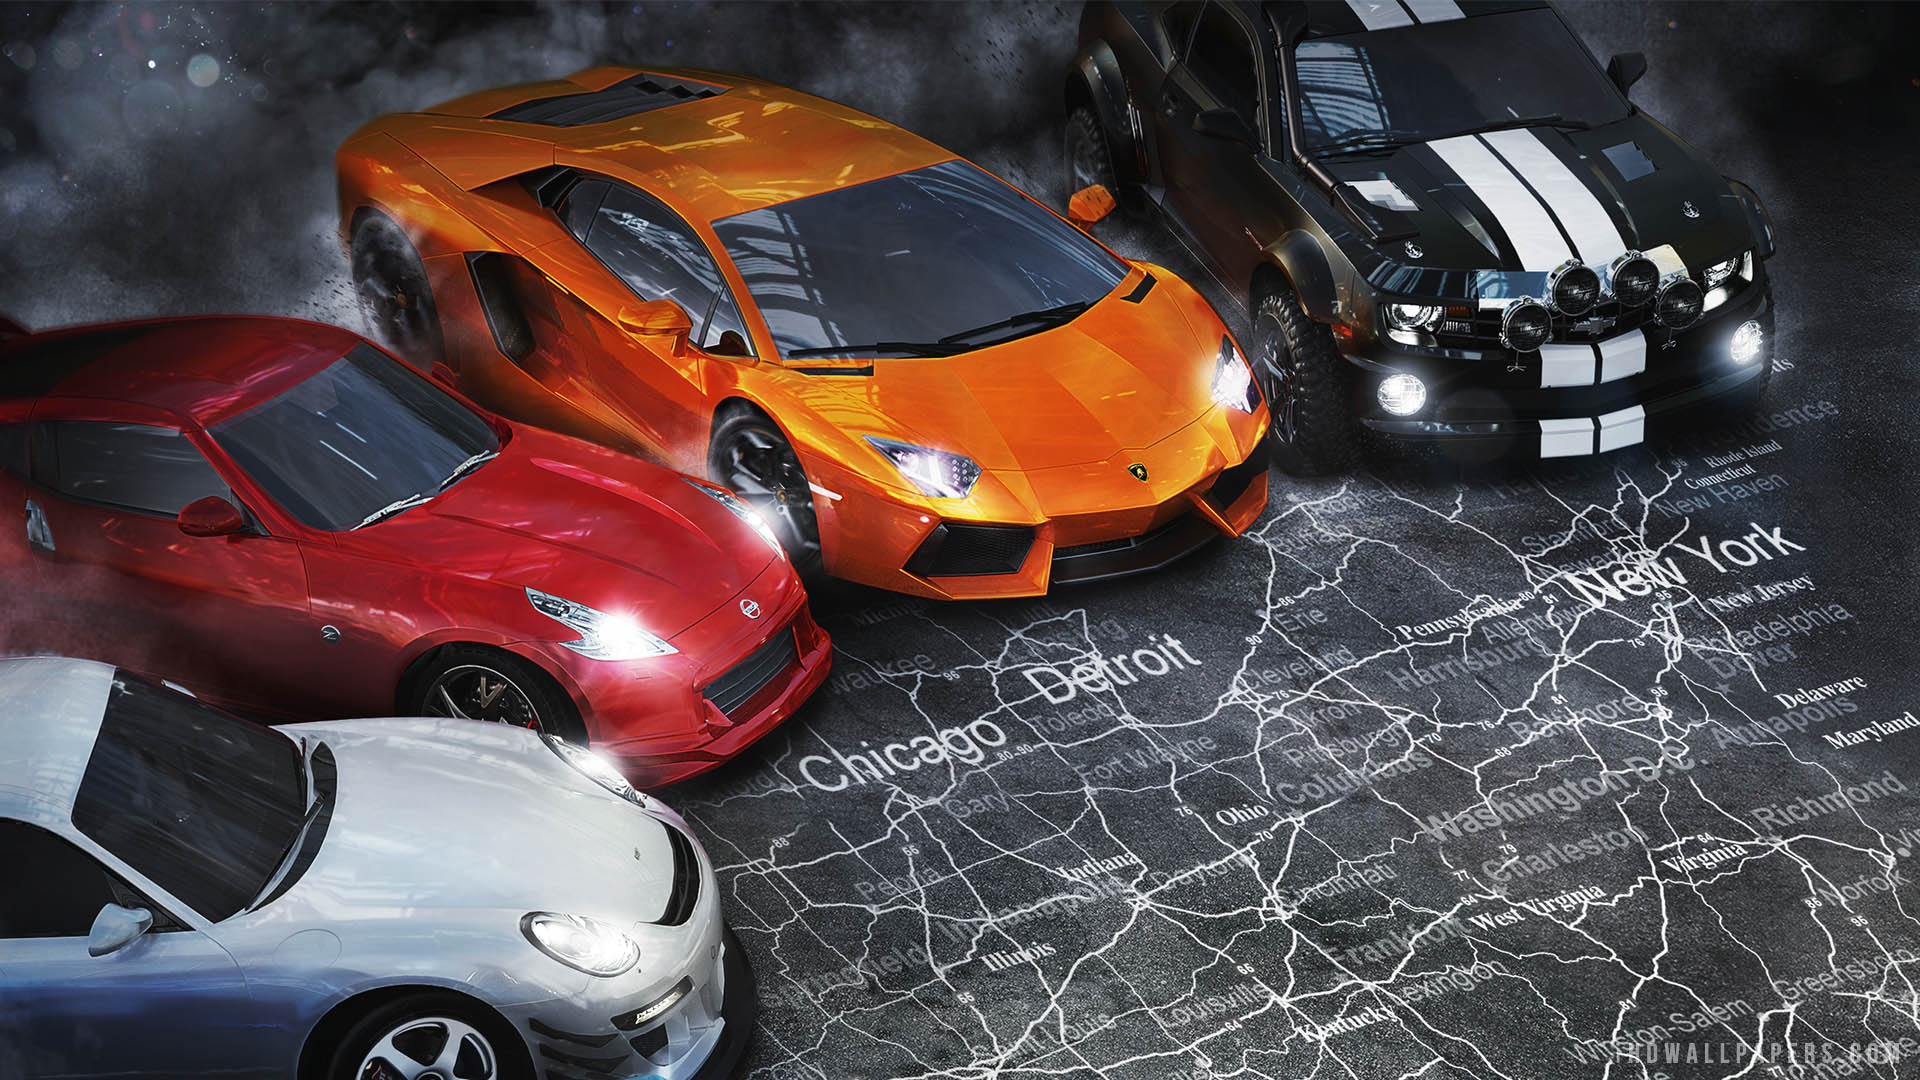 The Crew Game HD Wallpaper   iHD Wallpapers 1920x1080